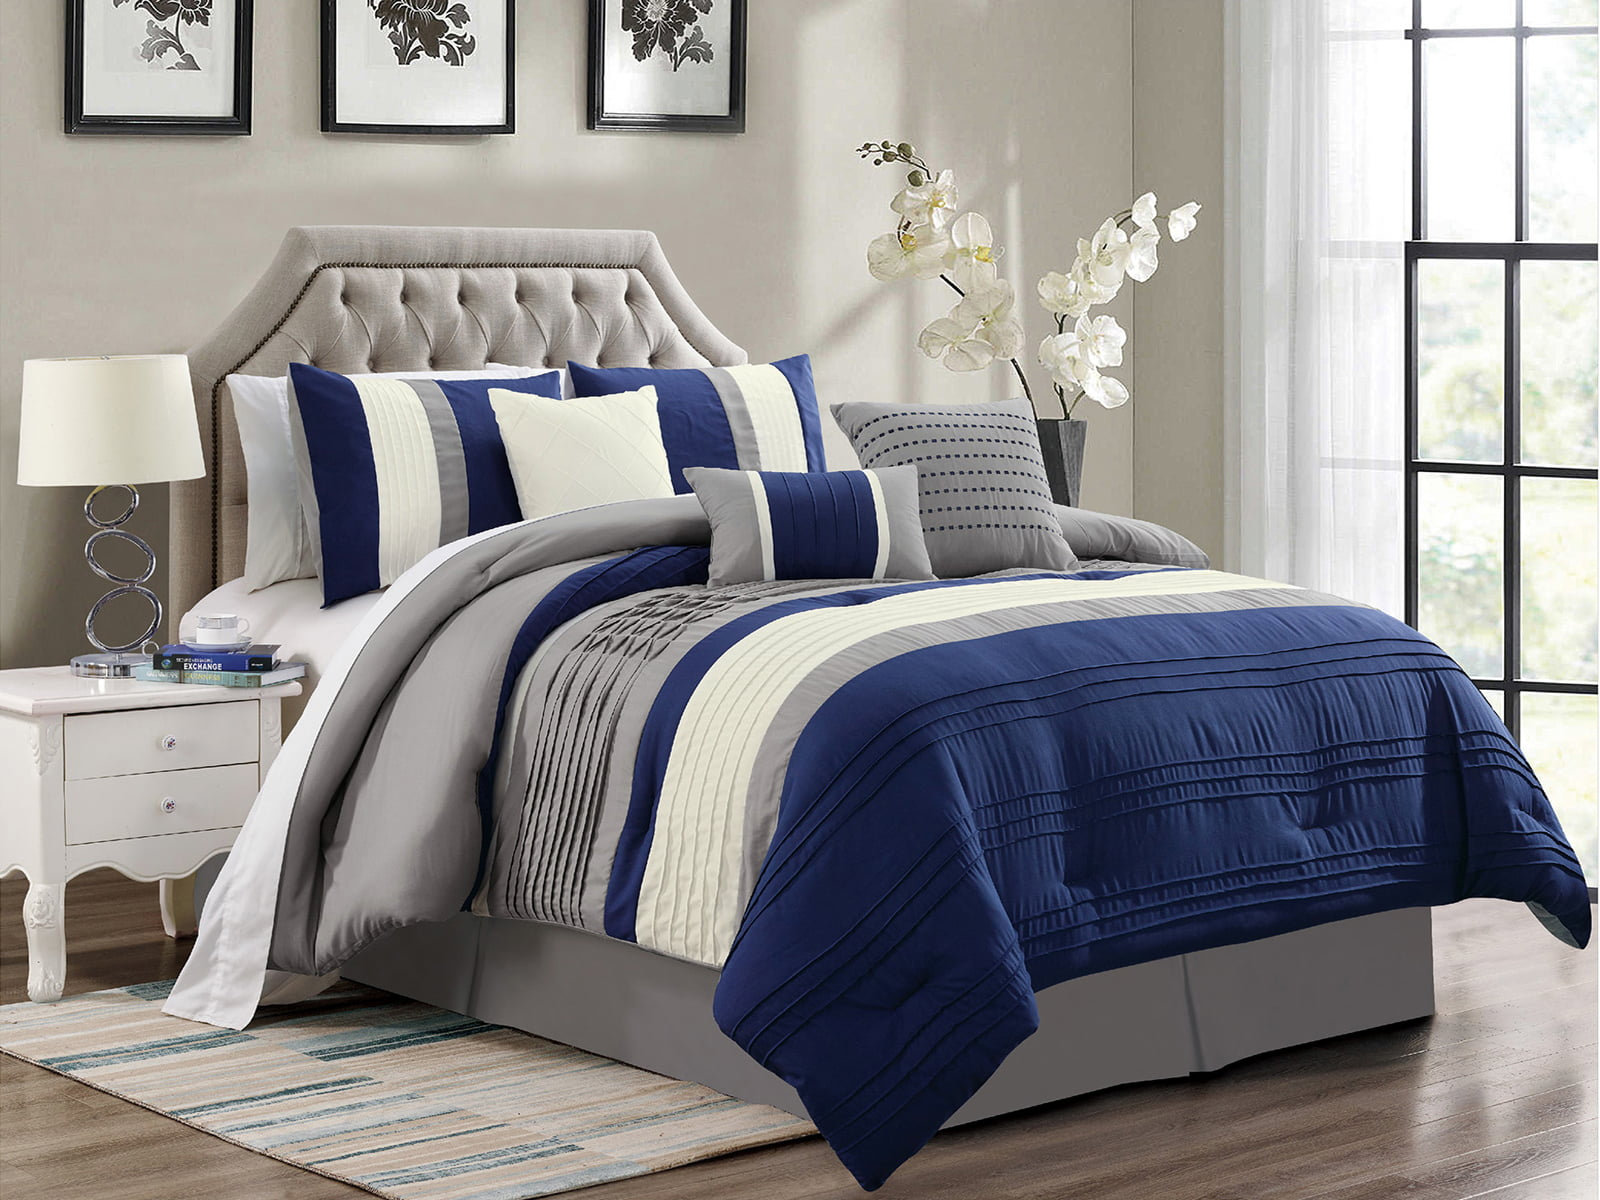 7 Pc Liam Pleated Pintuck Stripe Comforter Set Navy Blue Ivory Gray King Walmart Com Walmart Com